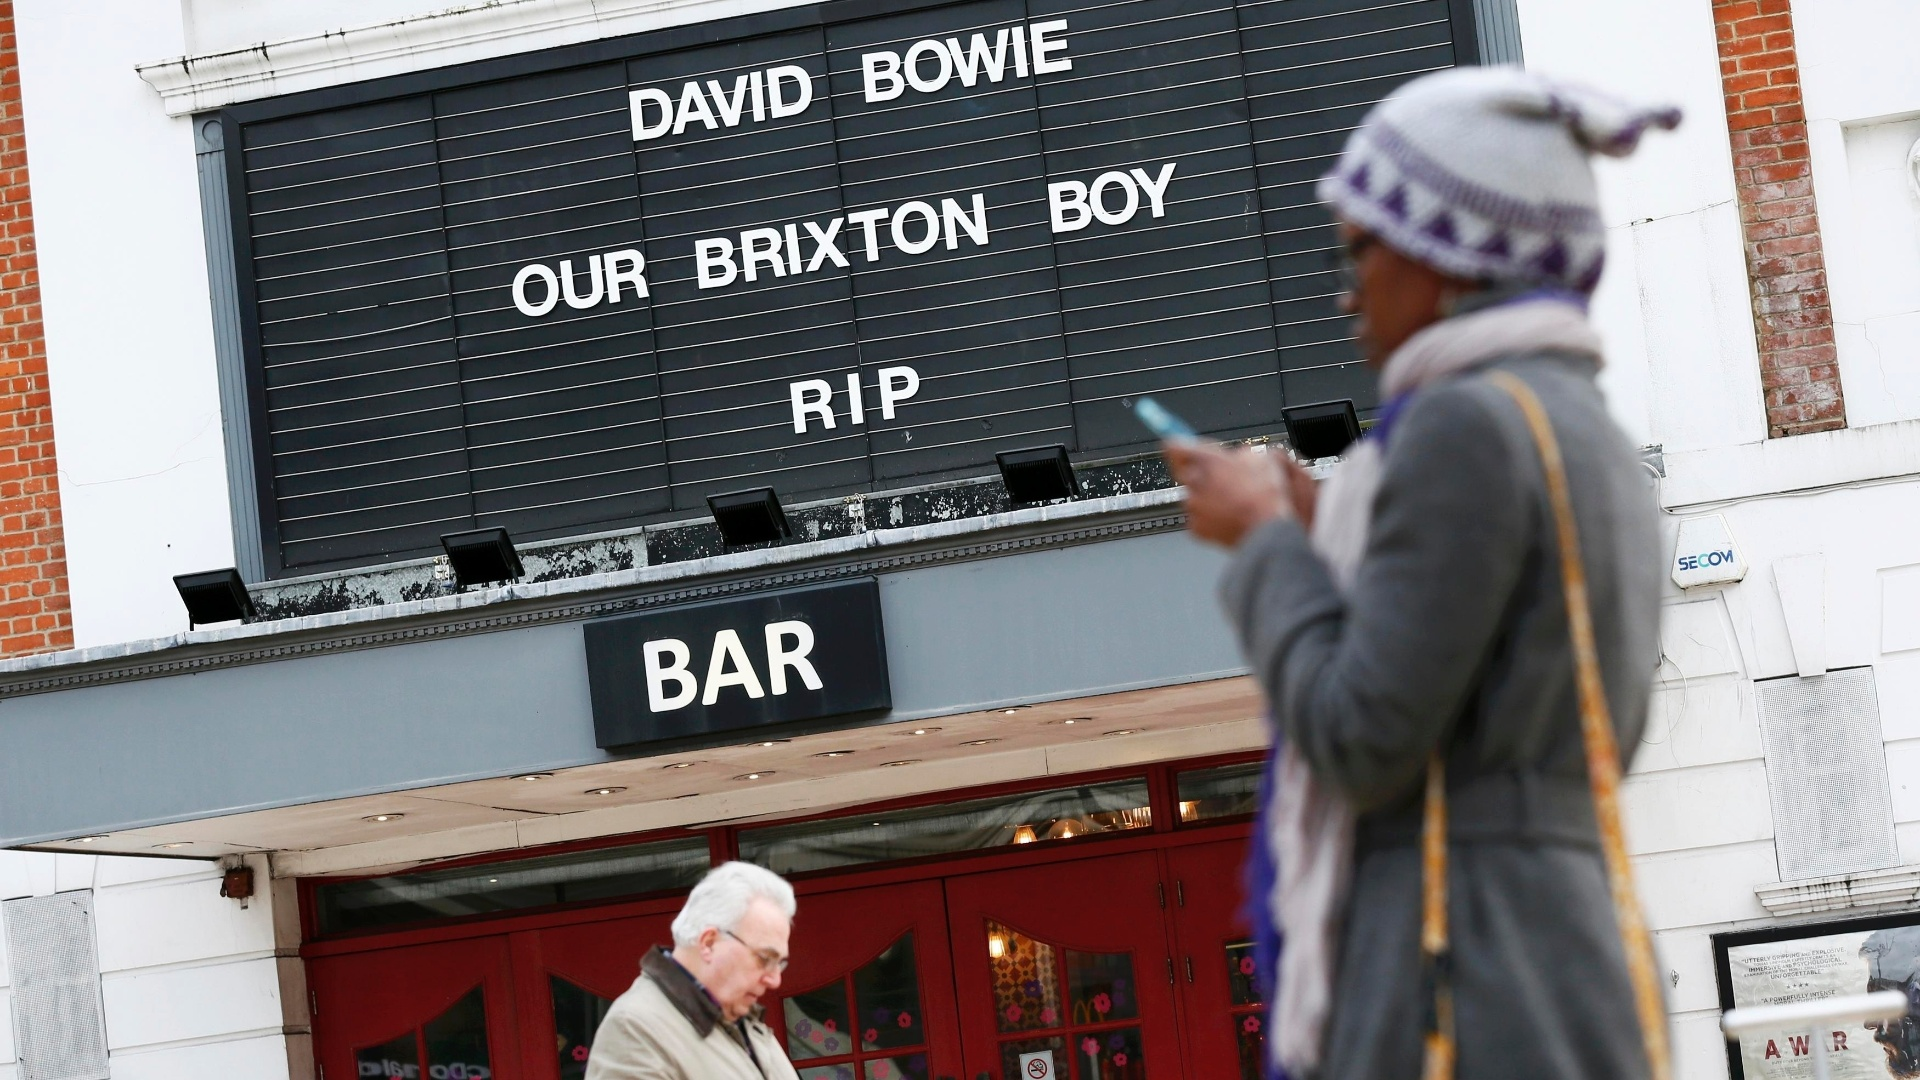 11.jan.2016 - Cinema em Brixton, sul de Londres, presta tributo a David Bowie